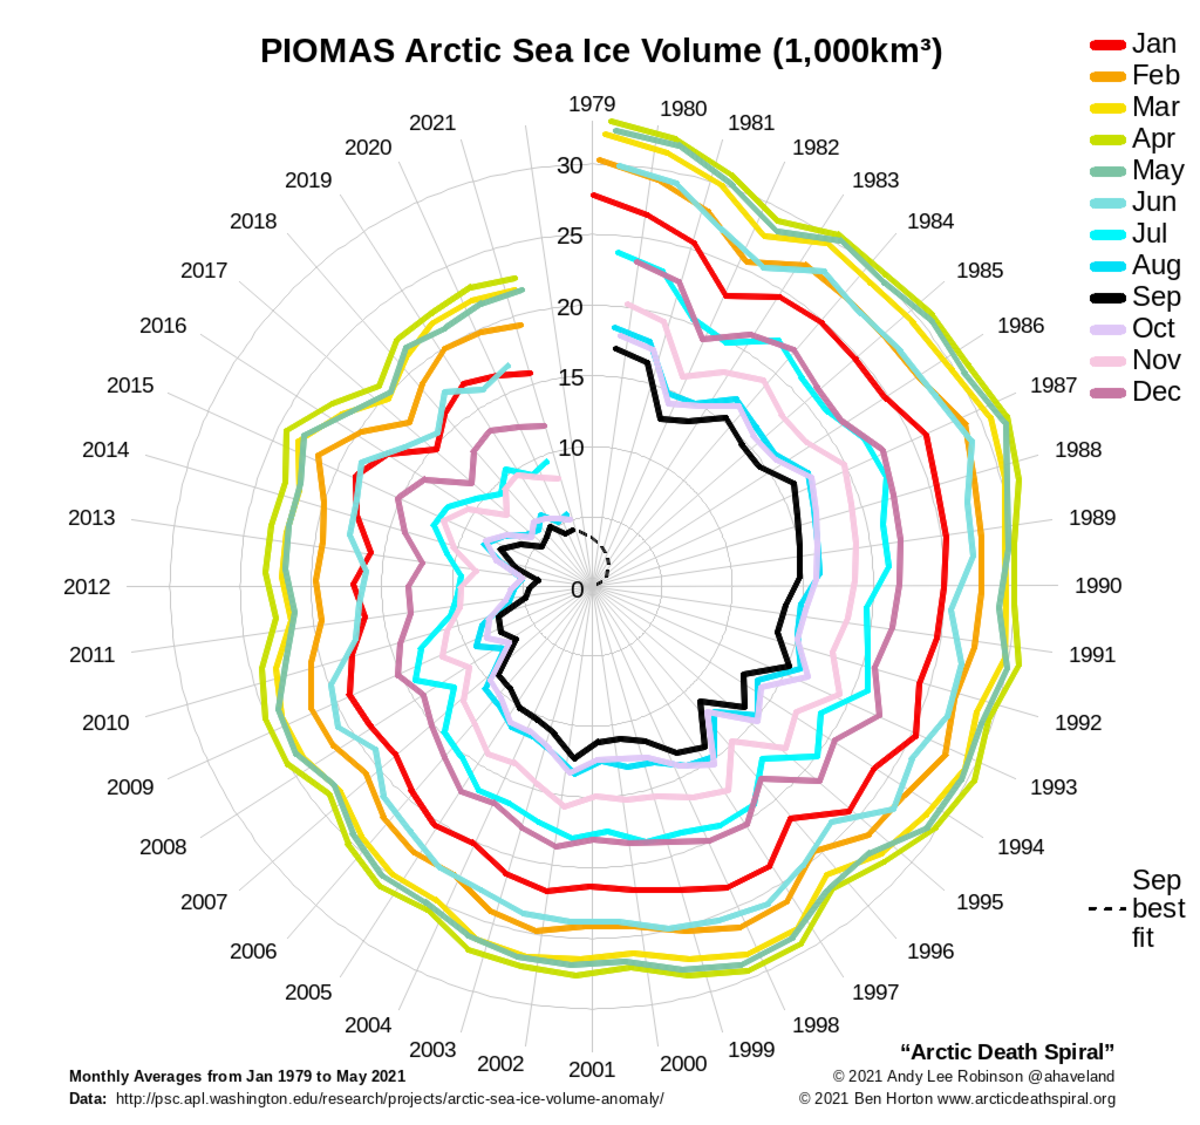 Spiraling image showing how Arctic sea ice is disappearing each year